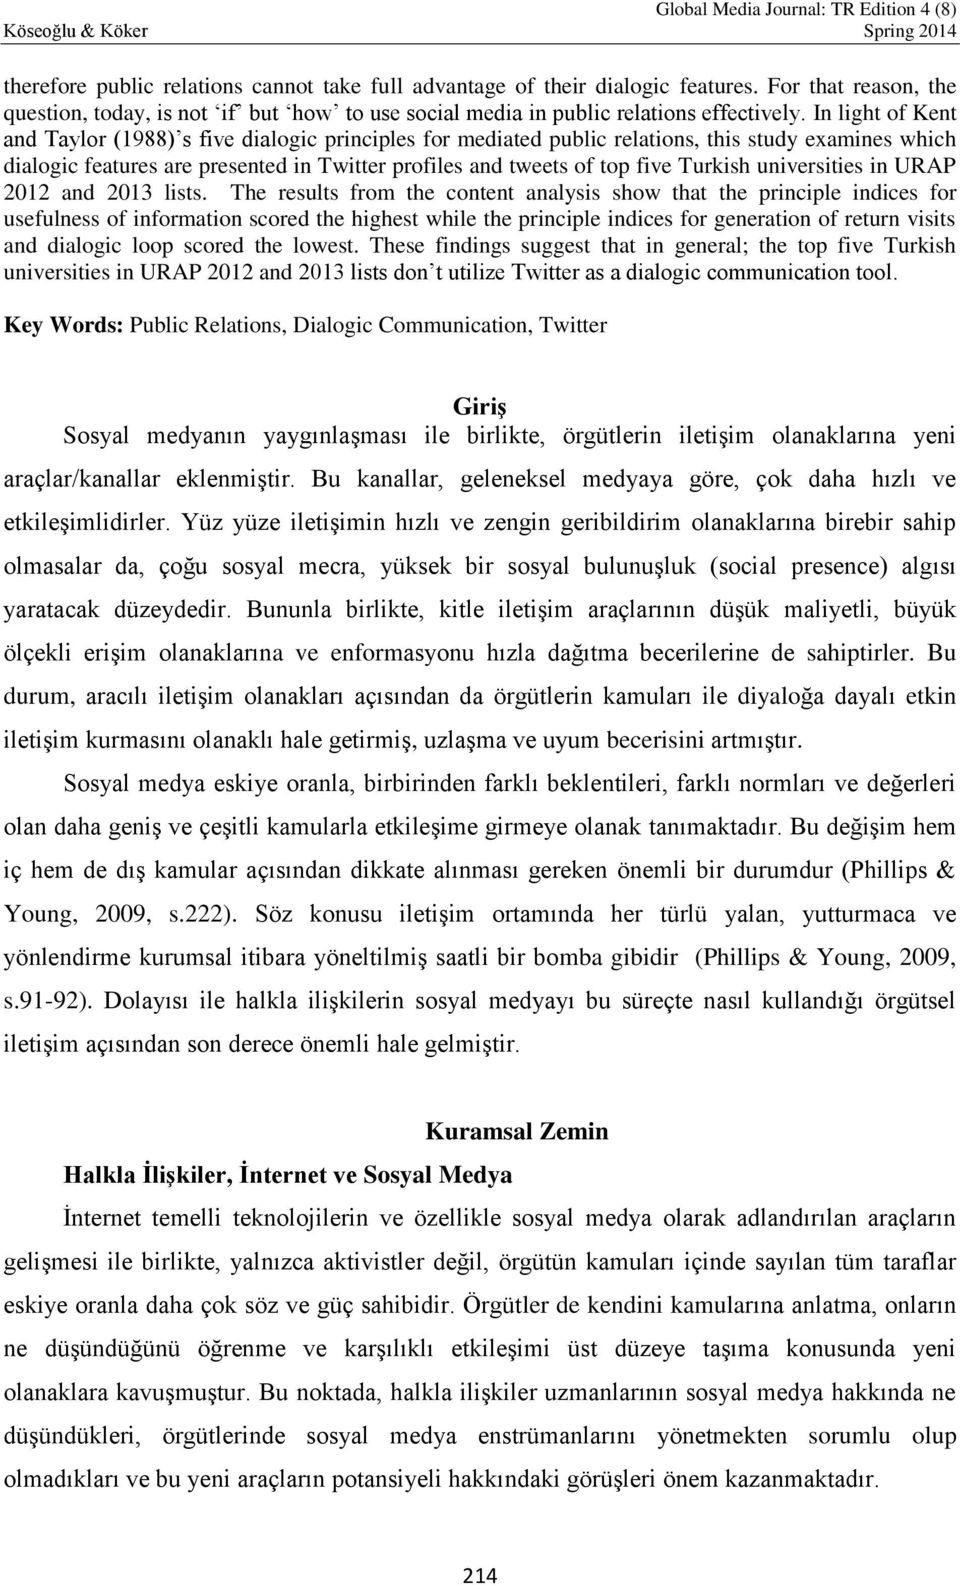 Turkish universities in URAP 2012 and 2013 lists.